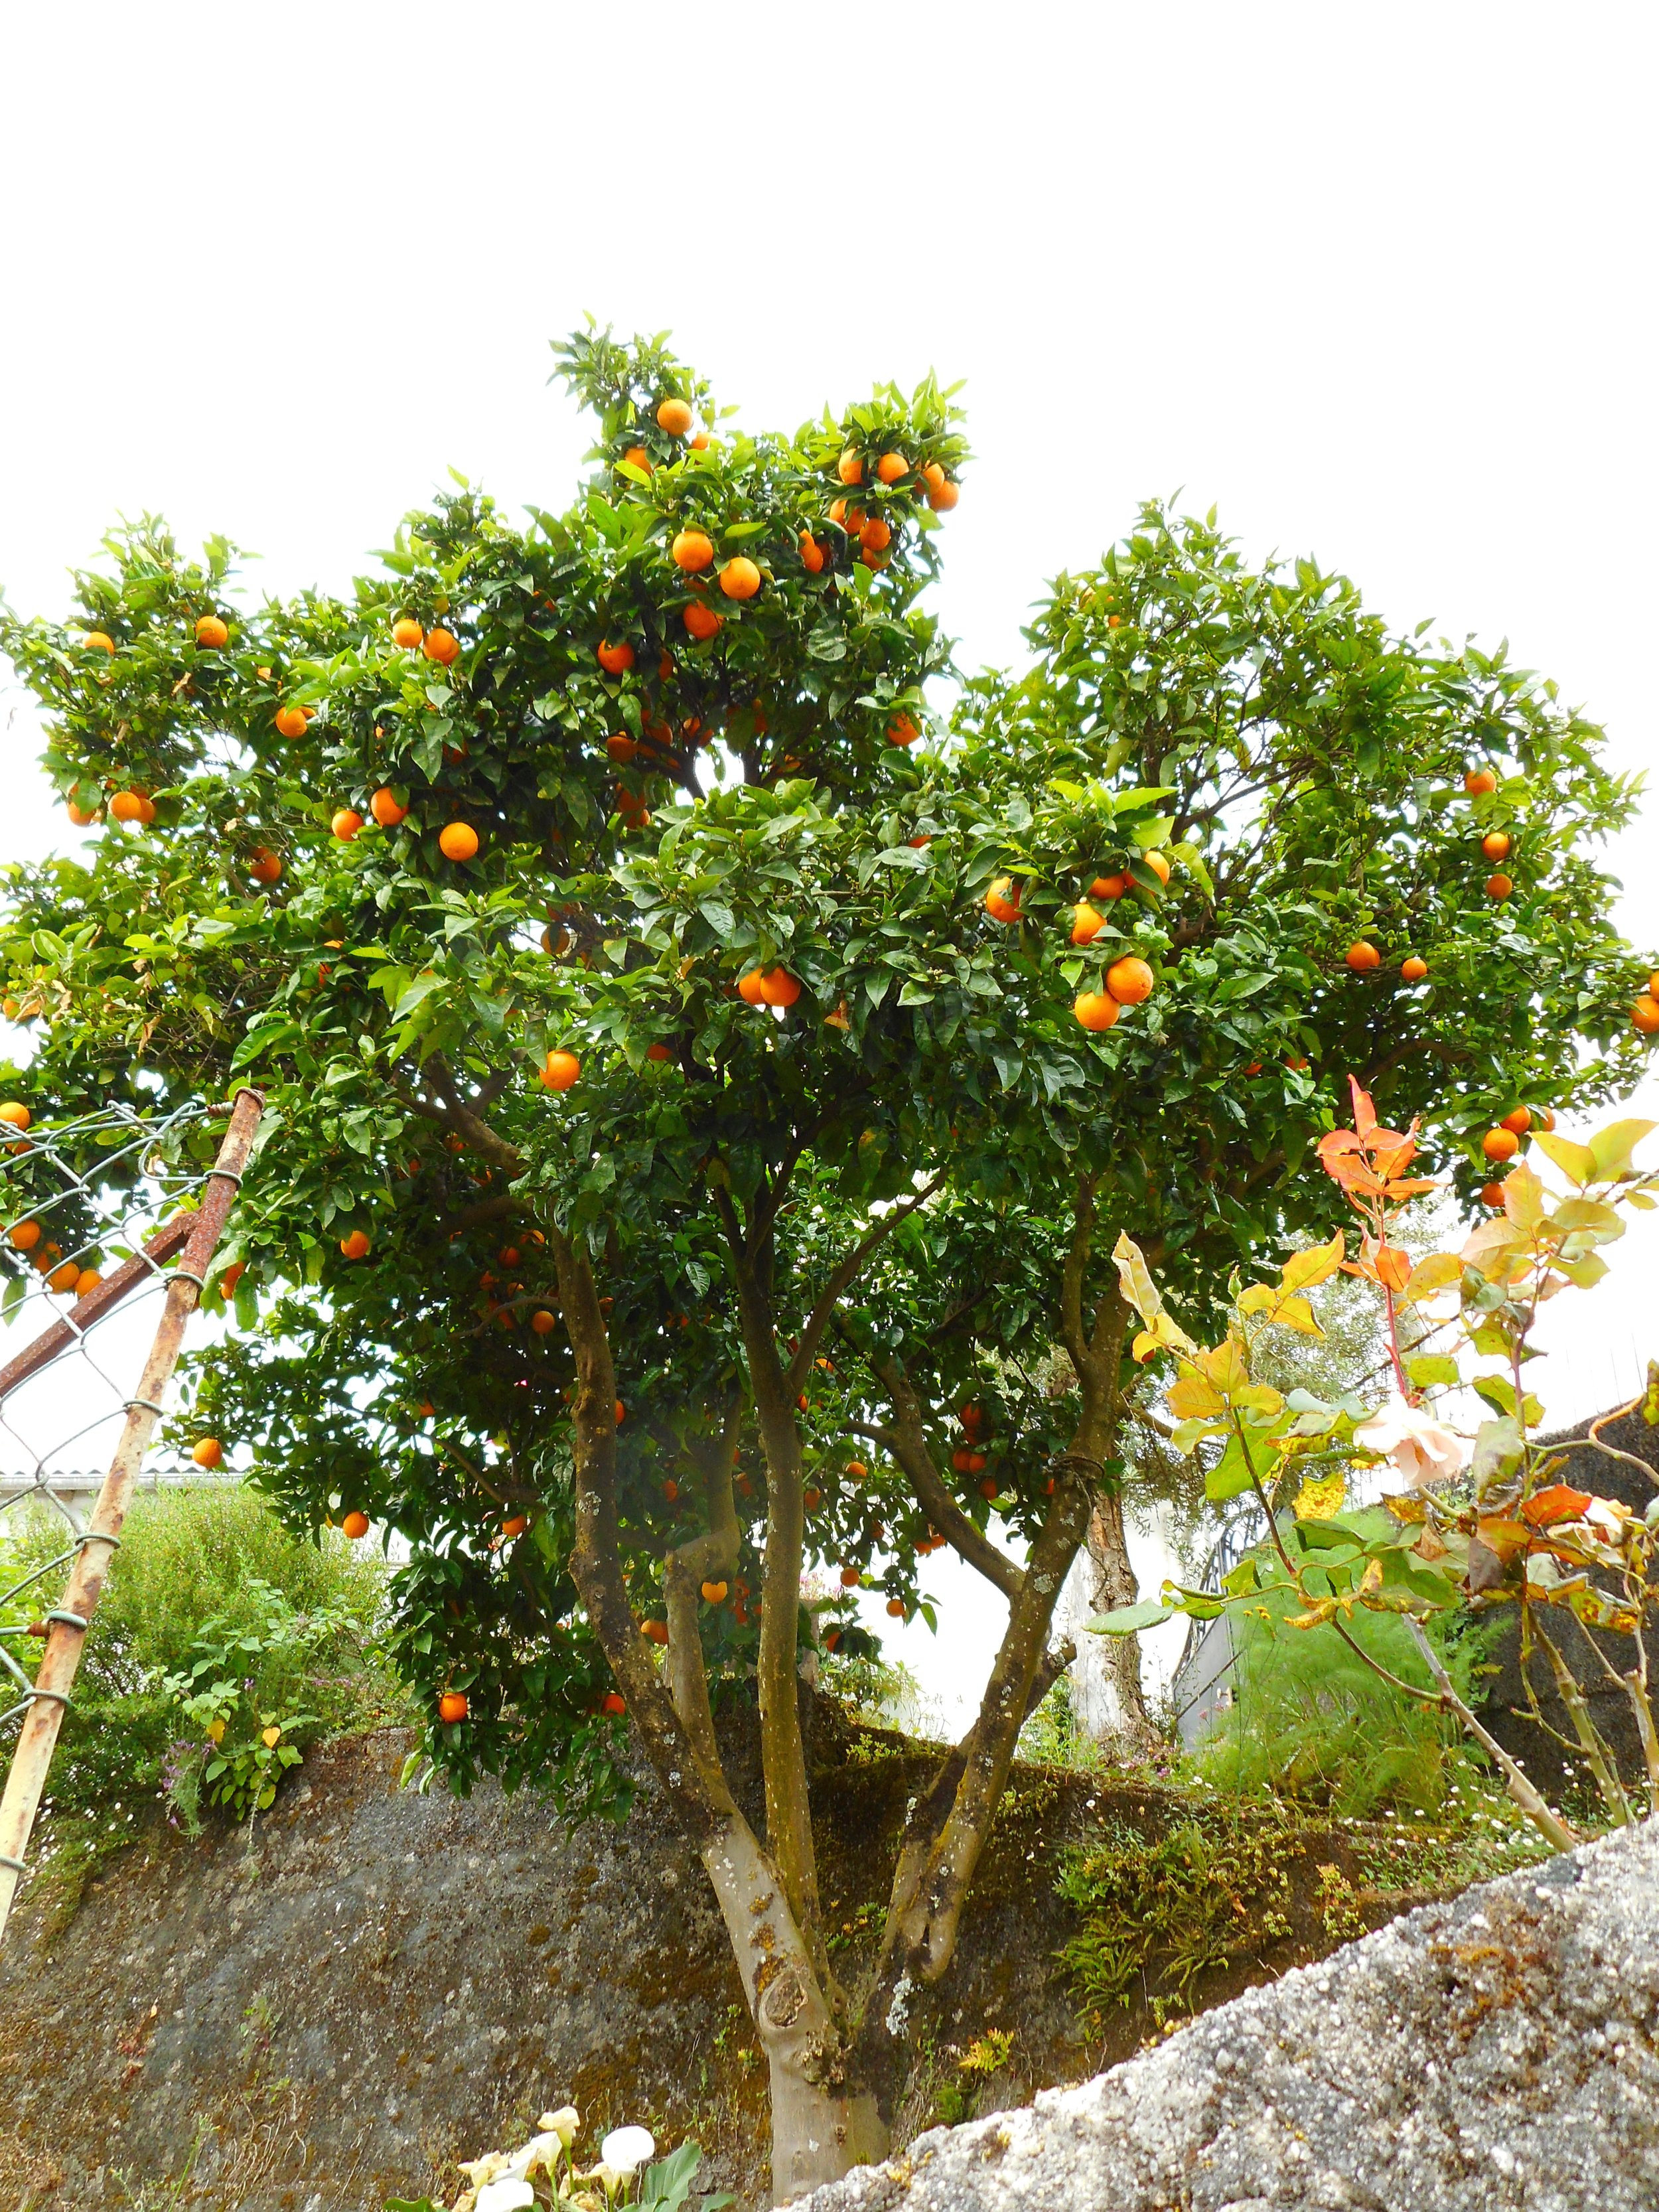 Citrus trees were everywhere